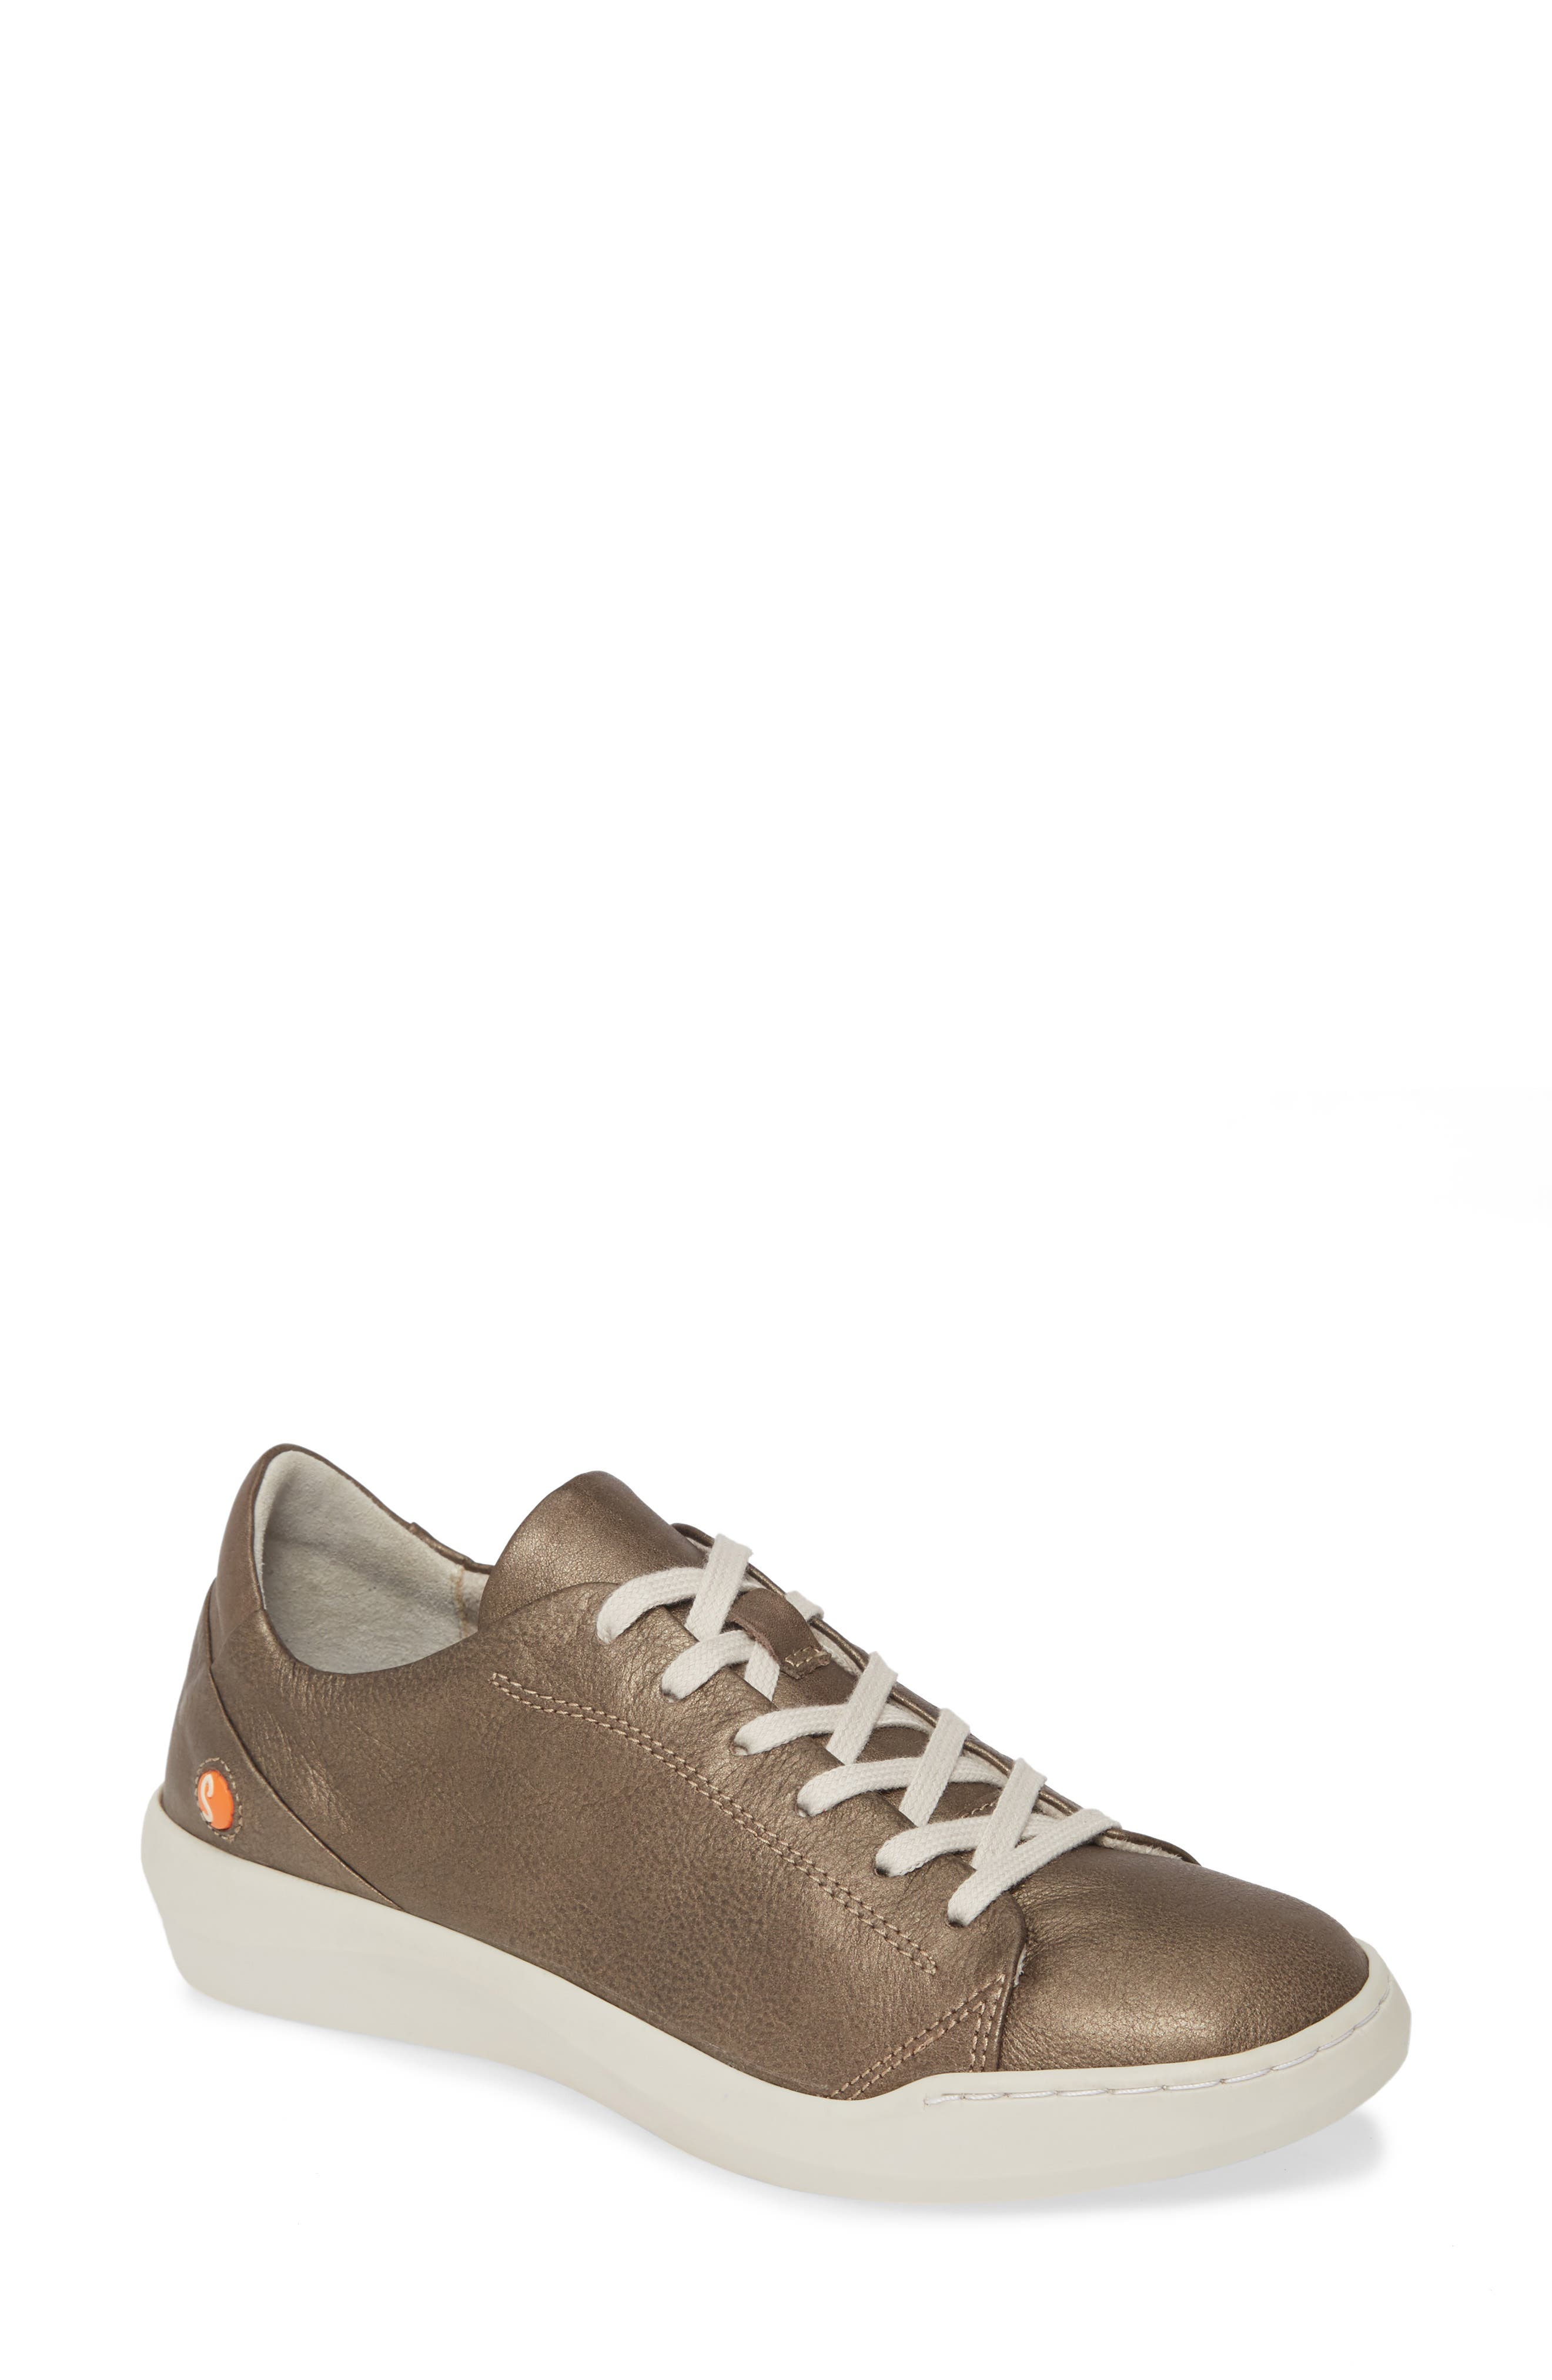 Softinos By Fly London Bauk Sneaker - Grey